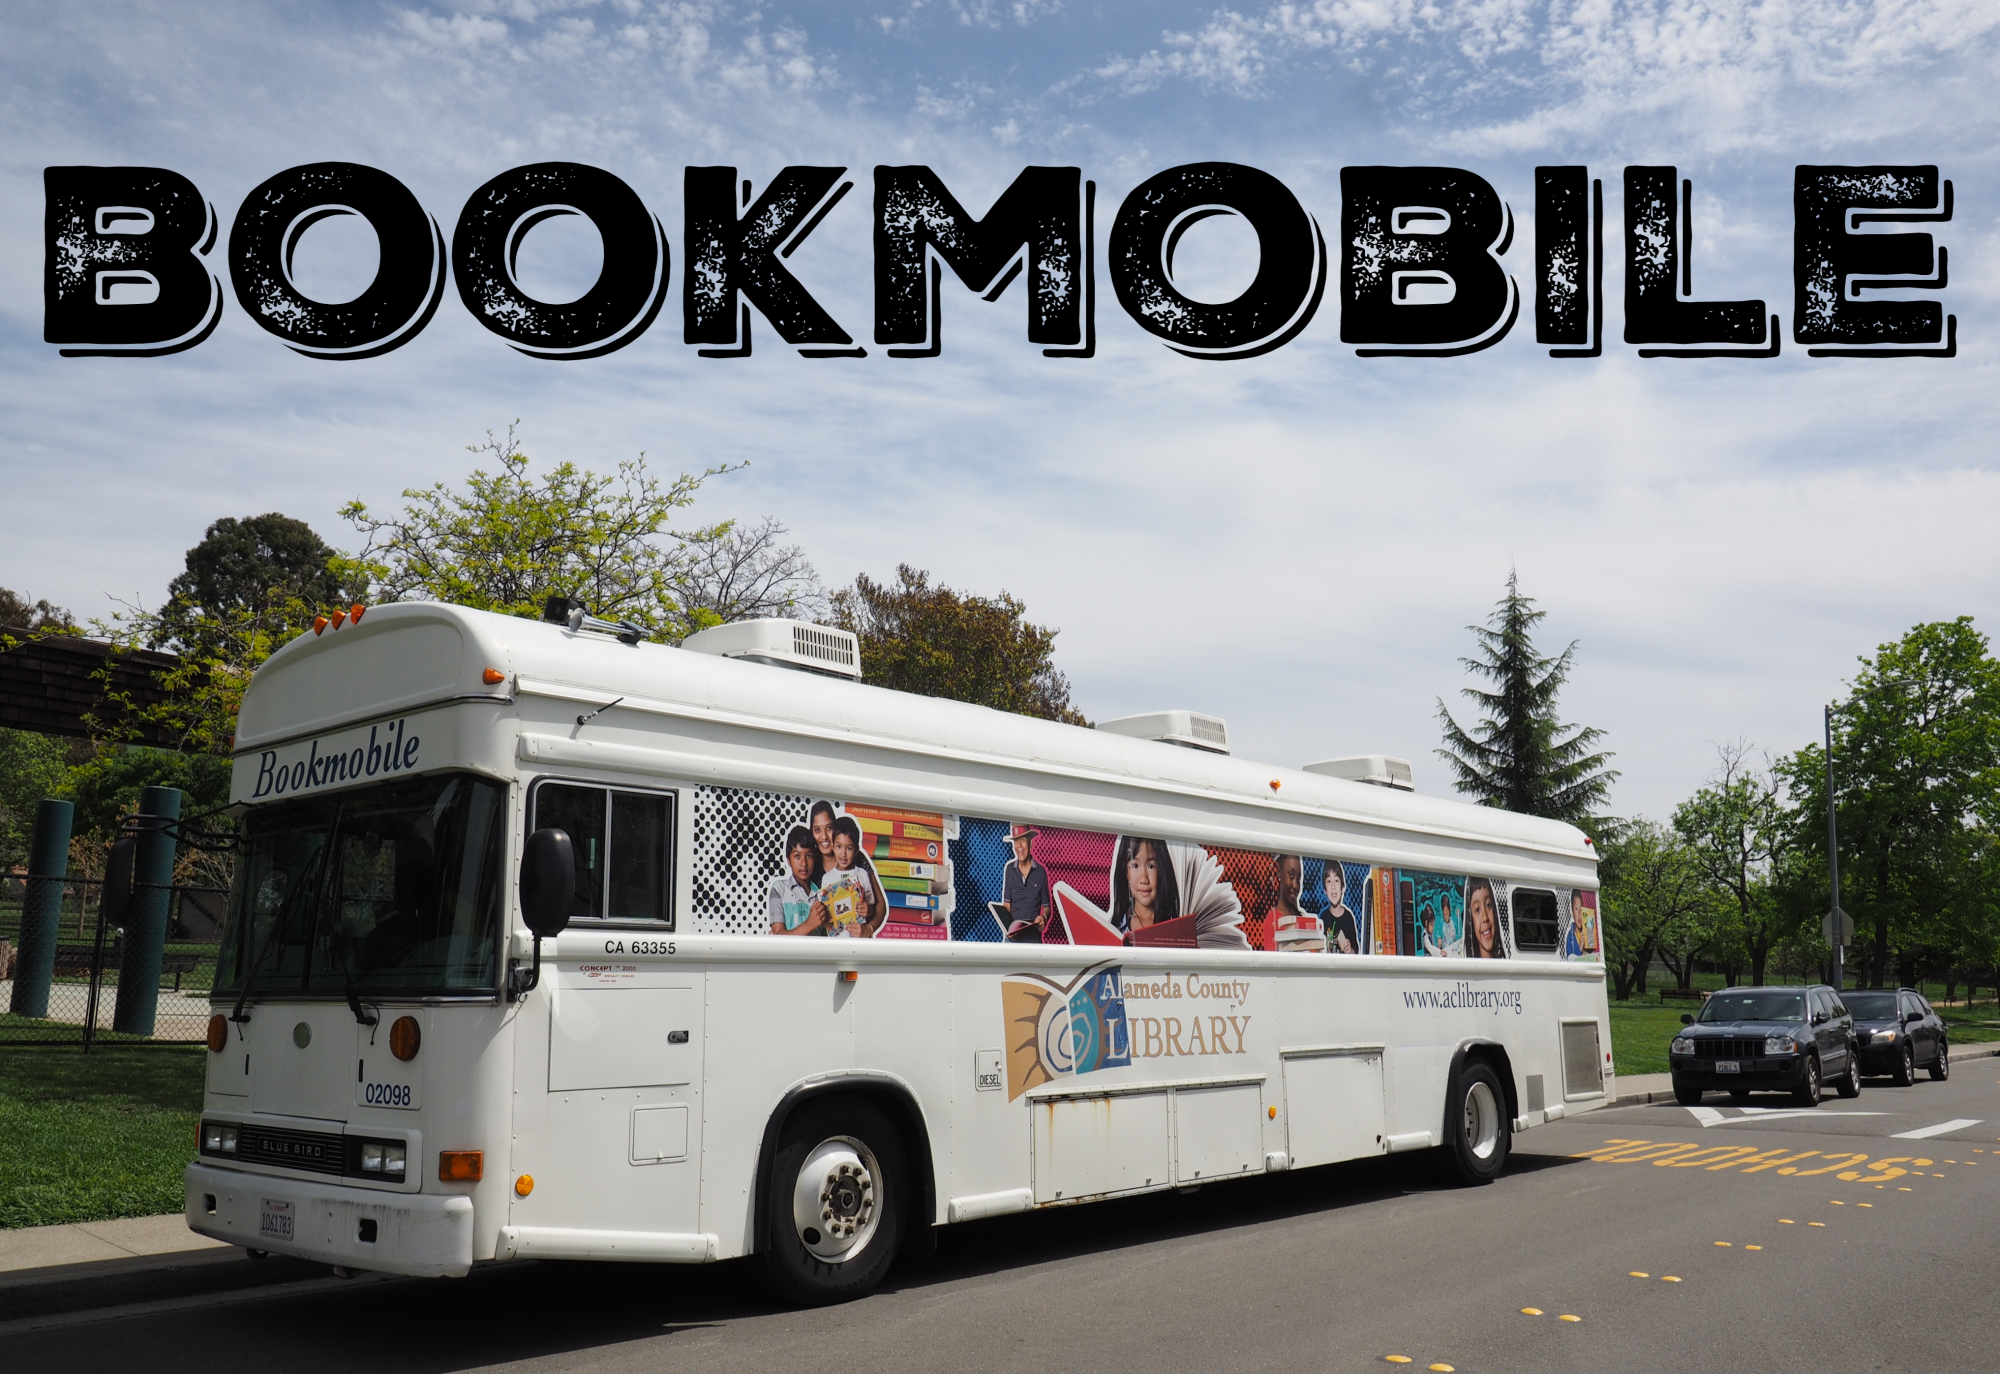 Jerome & Ohlones - bookmobile stop